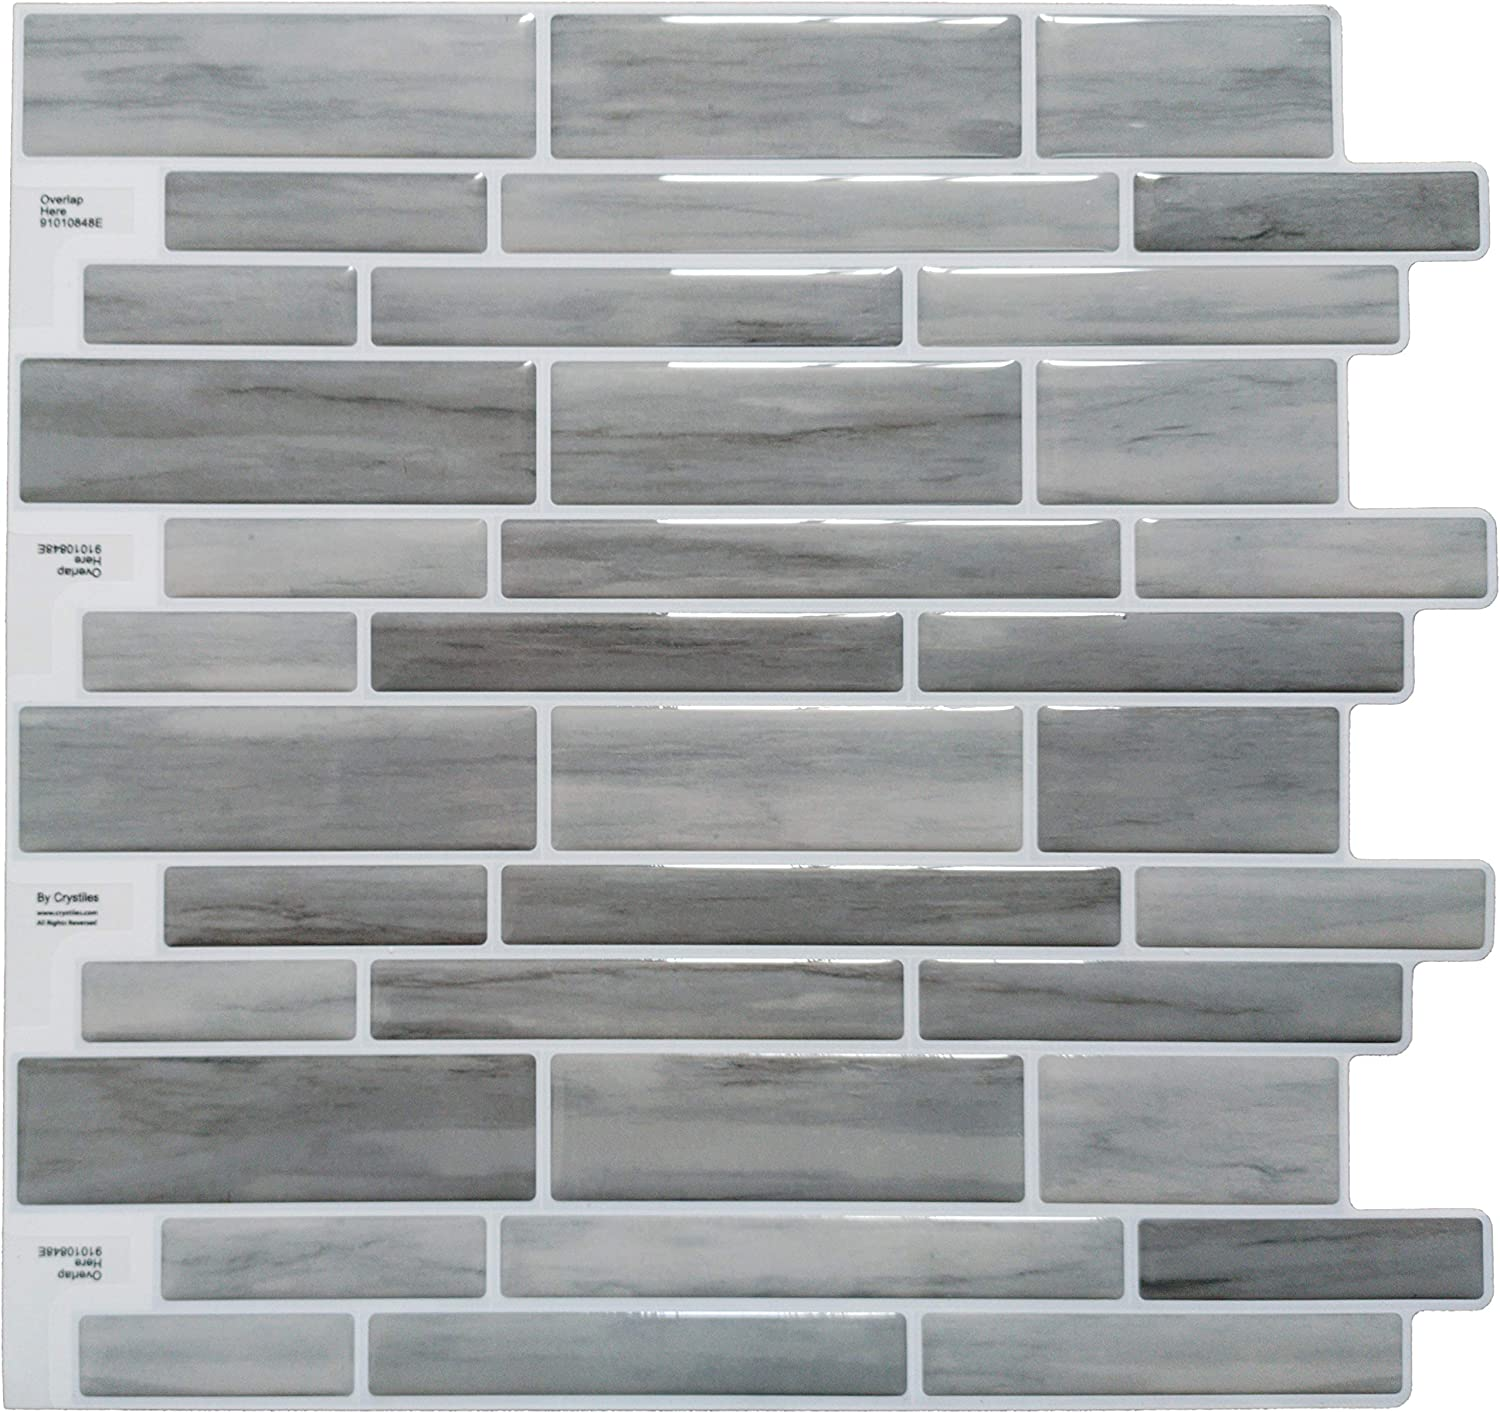 Amazon Com Crystiles Peel And Stick Diy Backsplash Tile Stick On Vinyl Wall Tile For Kitchen And Bathroom Item 91010848 10 X 10 1 Sheet Sample Home Improvement,Largest Cruise Ship In The World Compared To Titanic